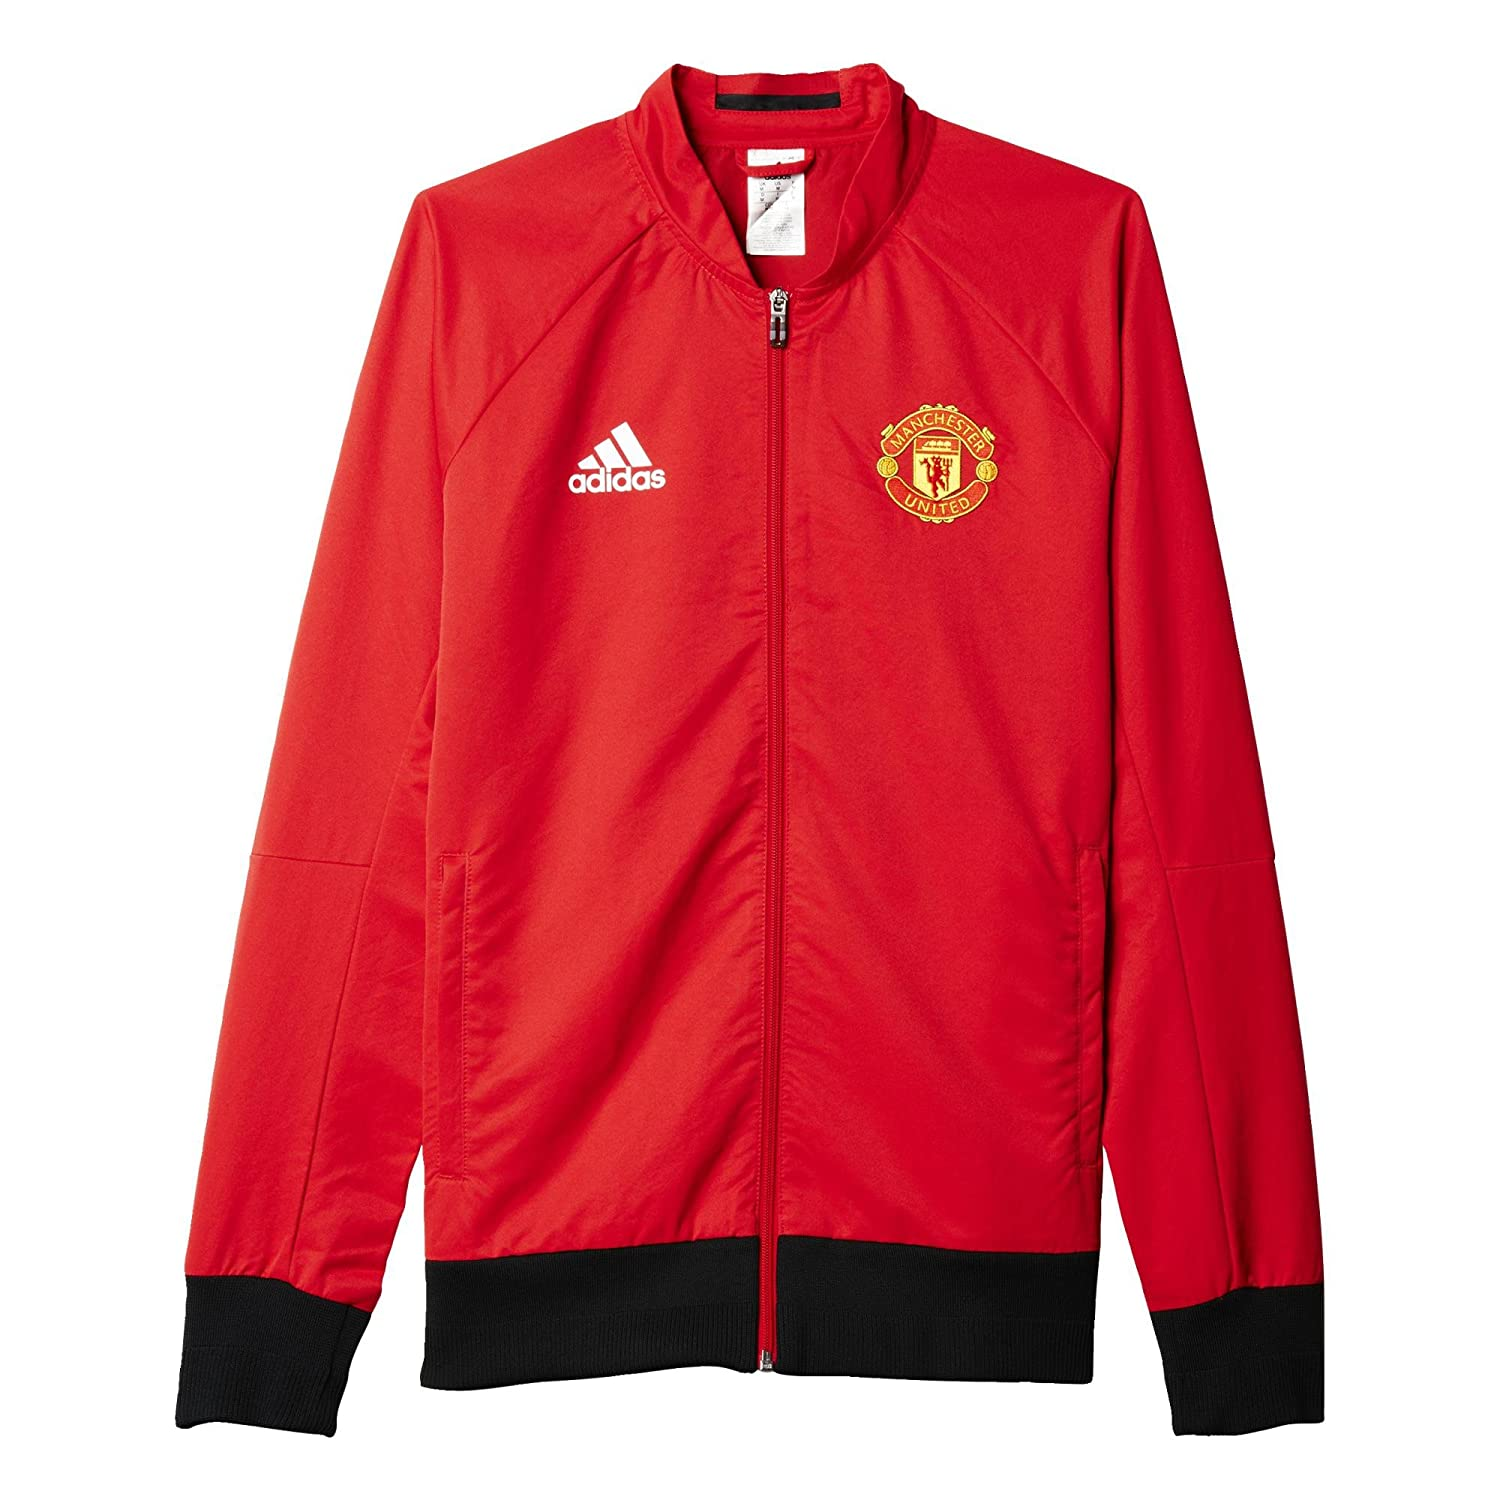 6f5b536257e Amazon.com  Adidas Anthem (Manchester United) Jacket  Sports   Outdoors